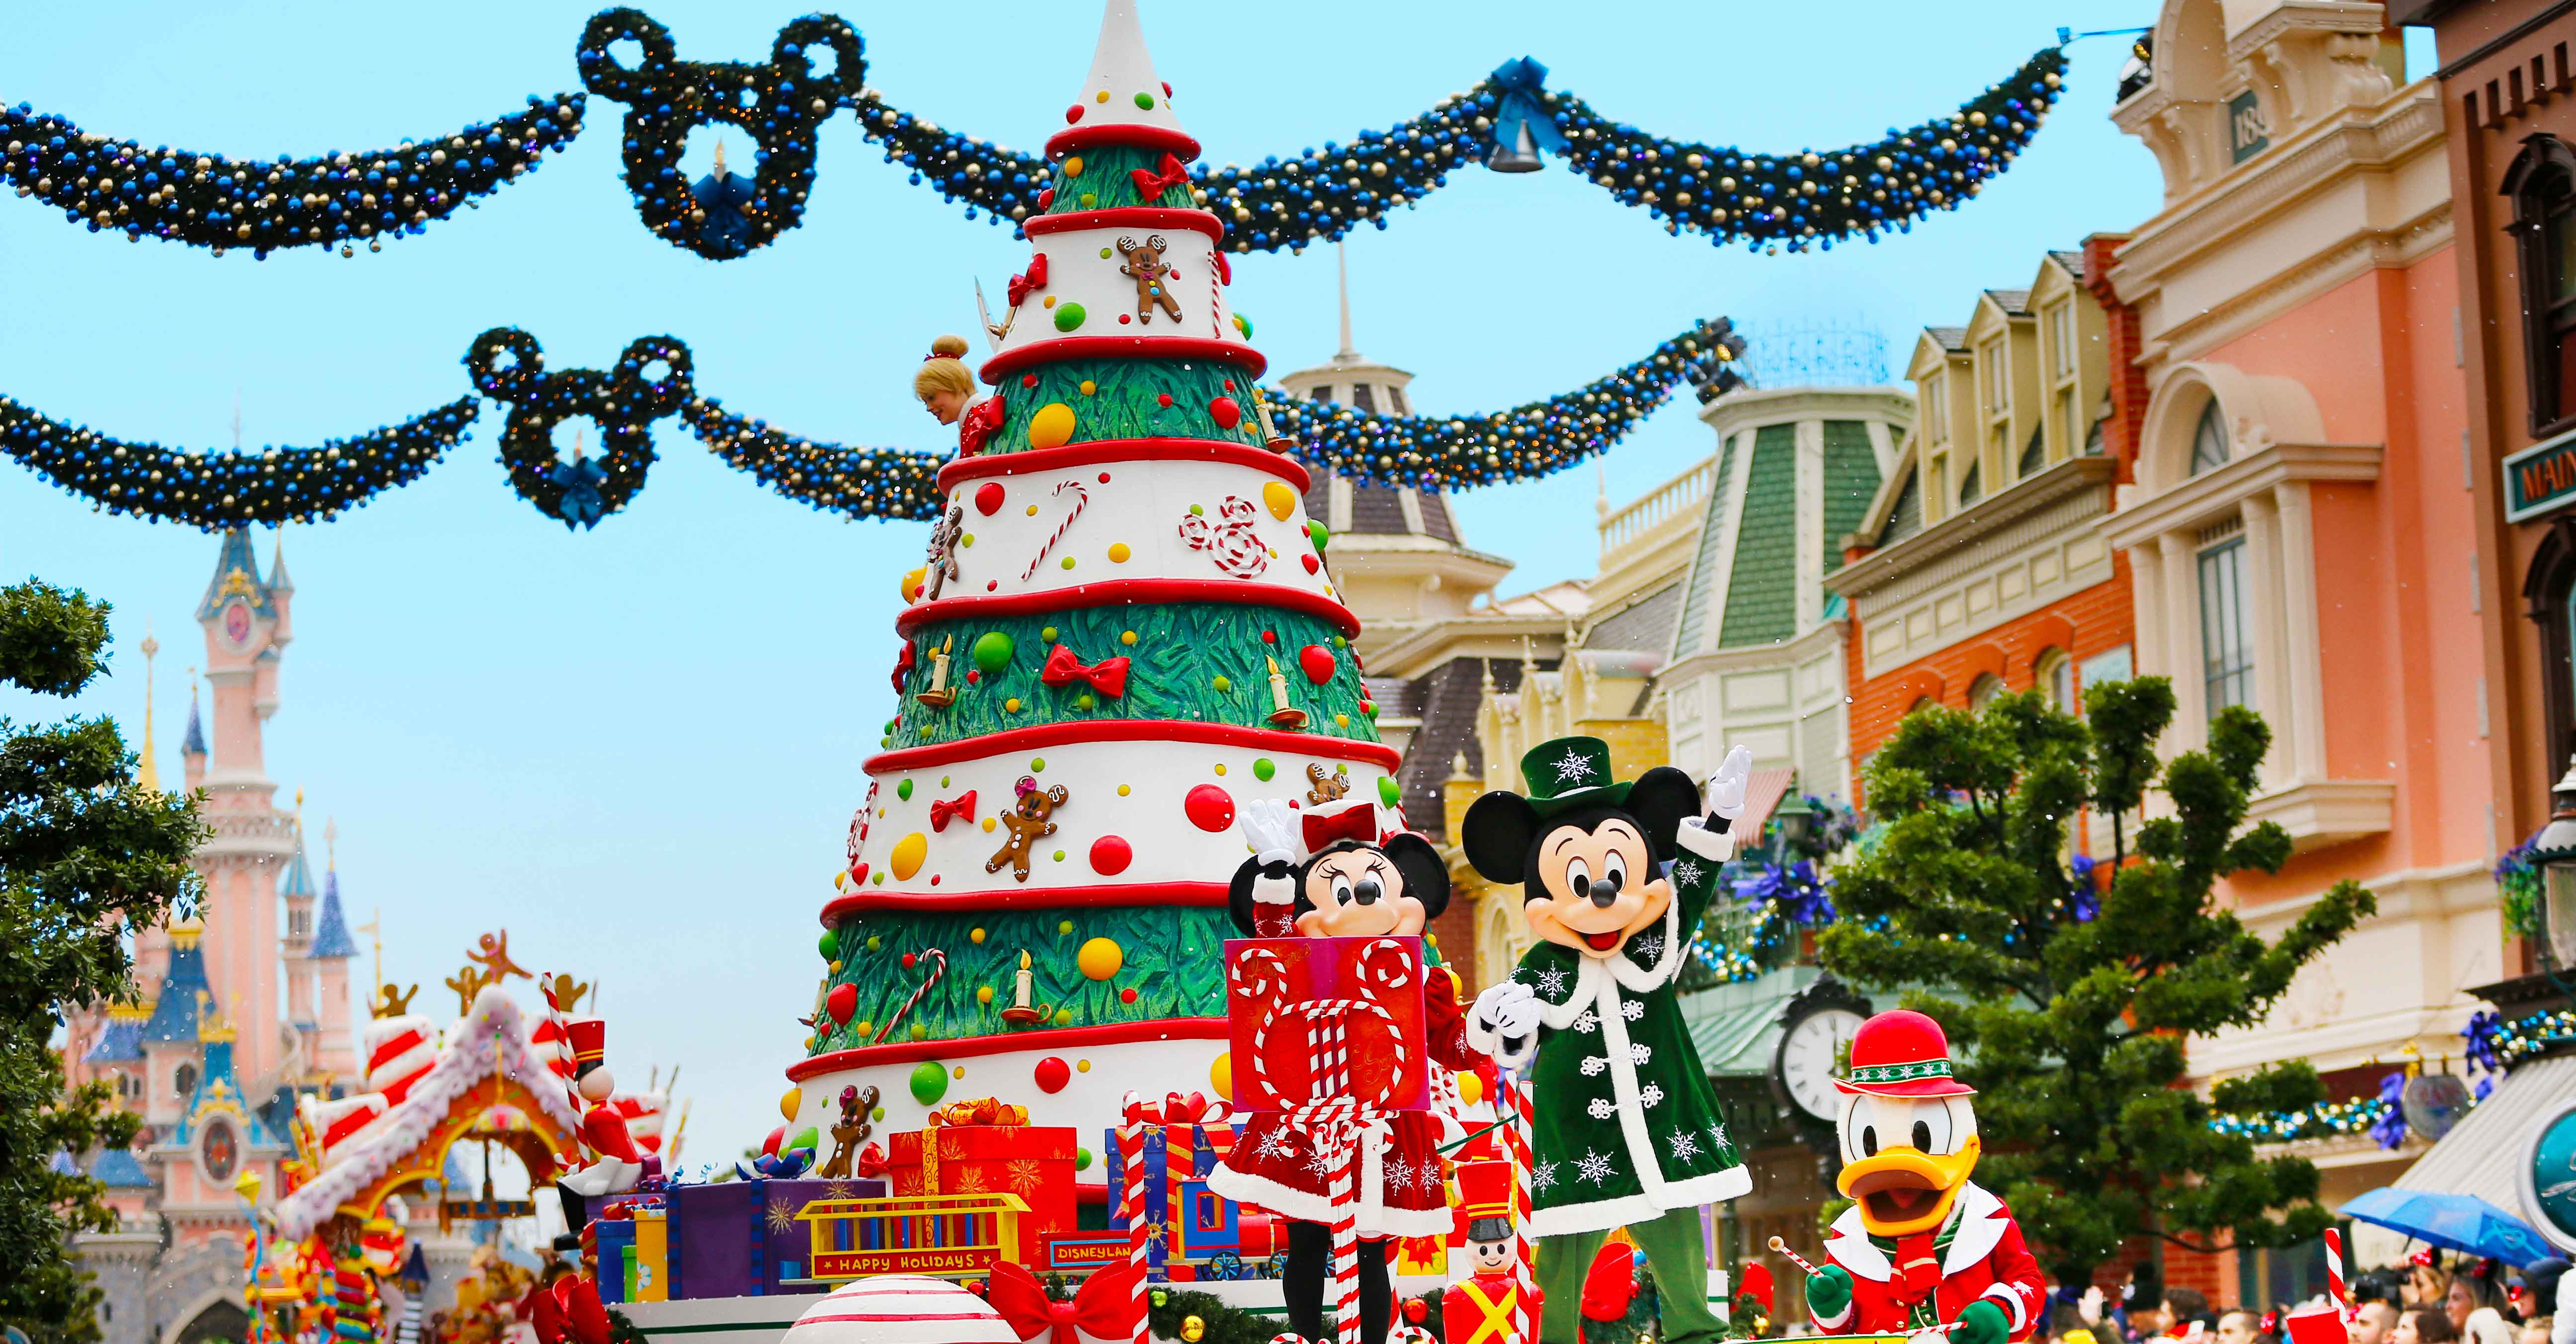 Christmas 2020.Disneyland Paris Christmas Season Low Prices Book With